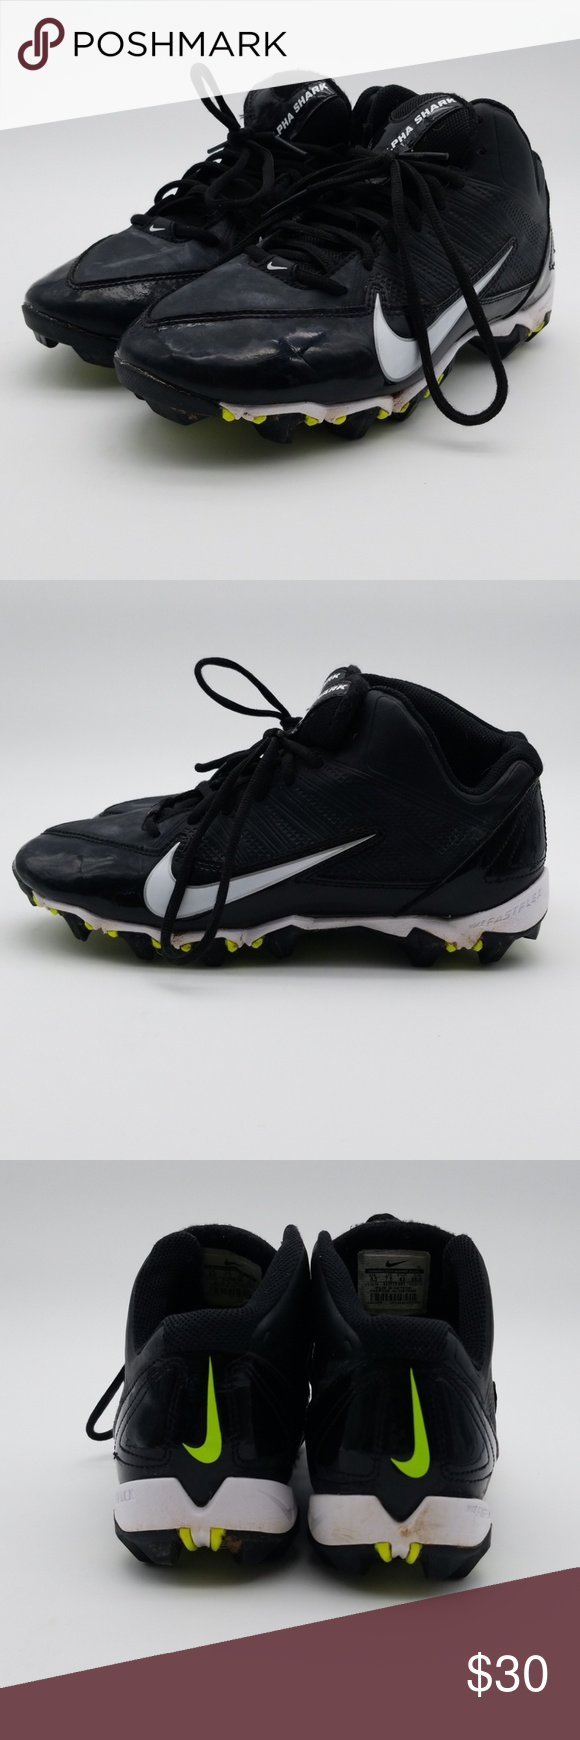 online store 88574 68675 Nike Alpha Sharks 3 4 Football Cleats sz 8.5 A7 Pre-owned good condition